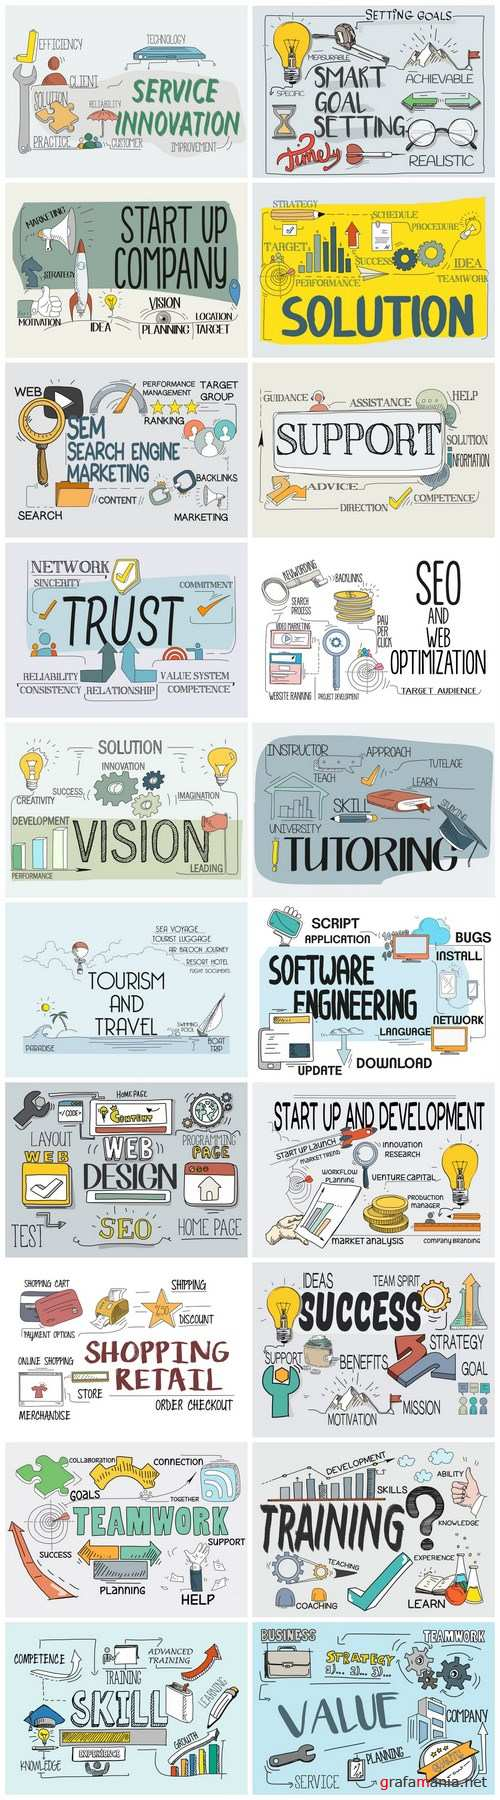 Business & Marketing Concept 2 - 20xEPS